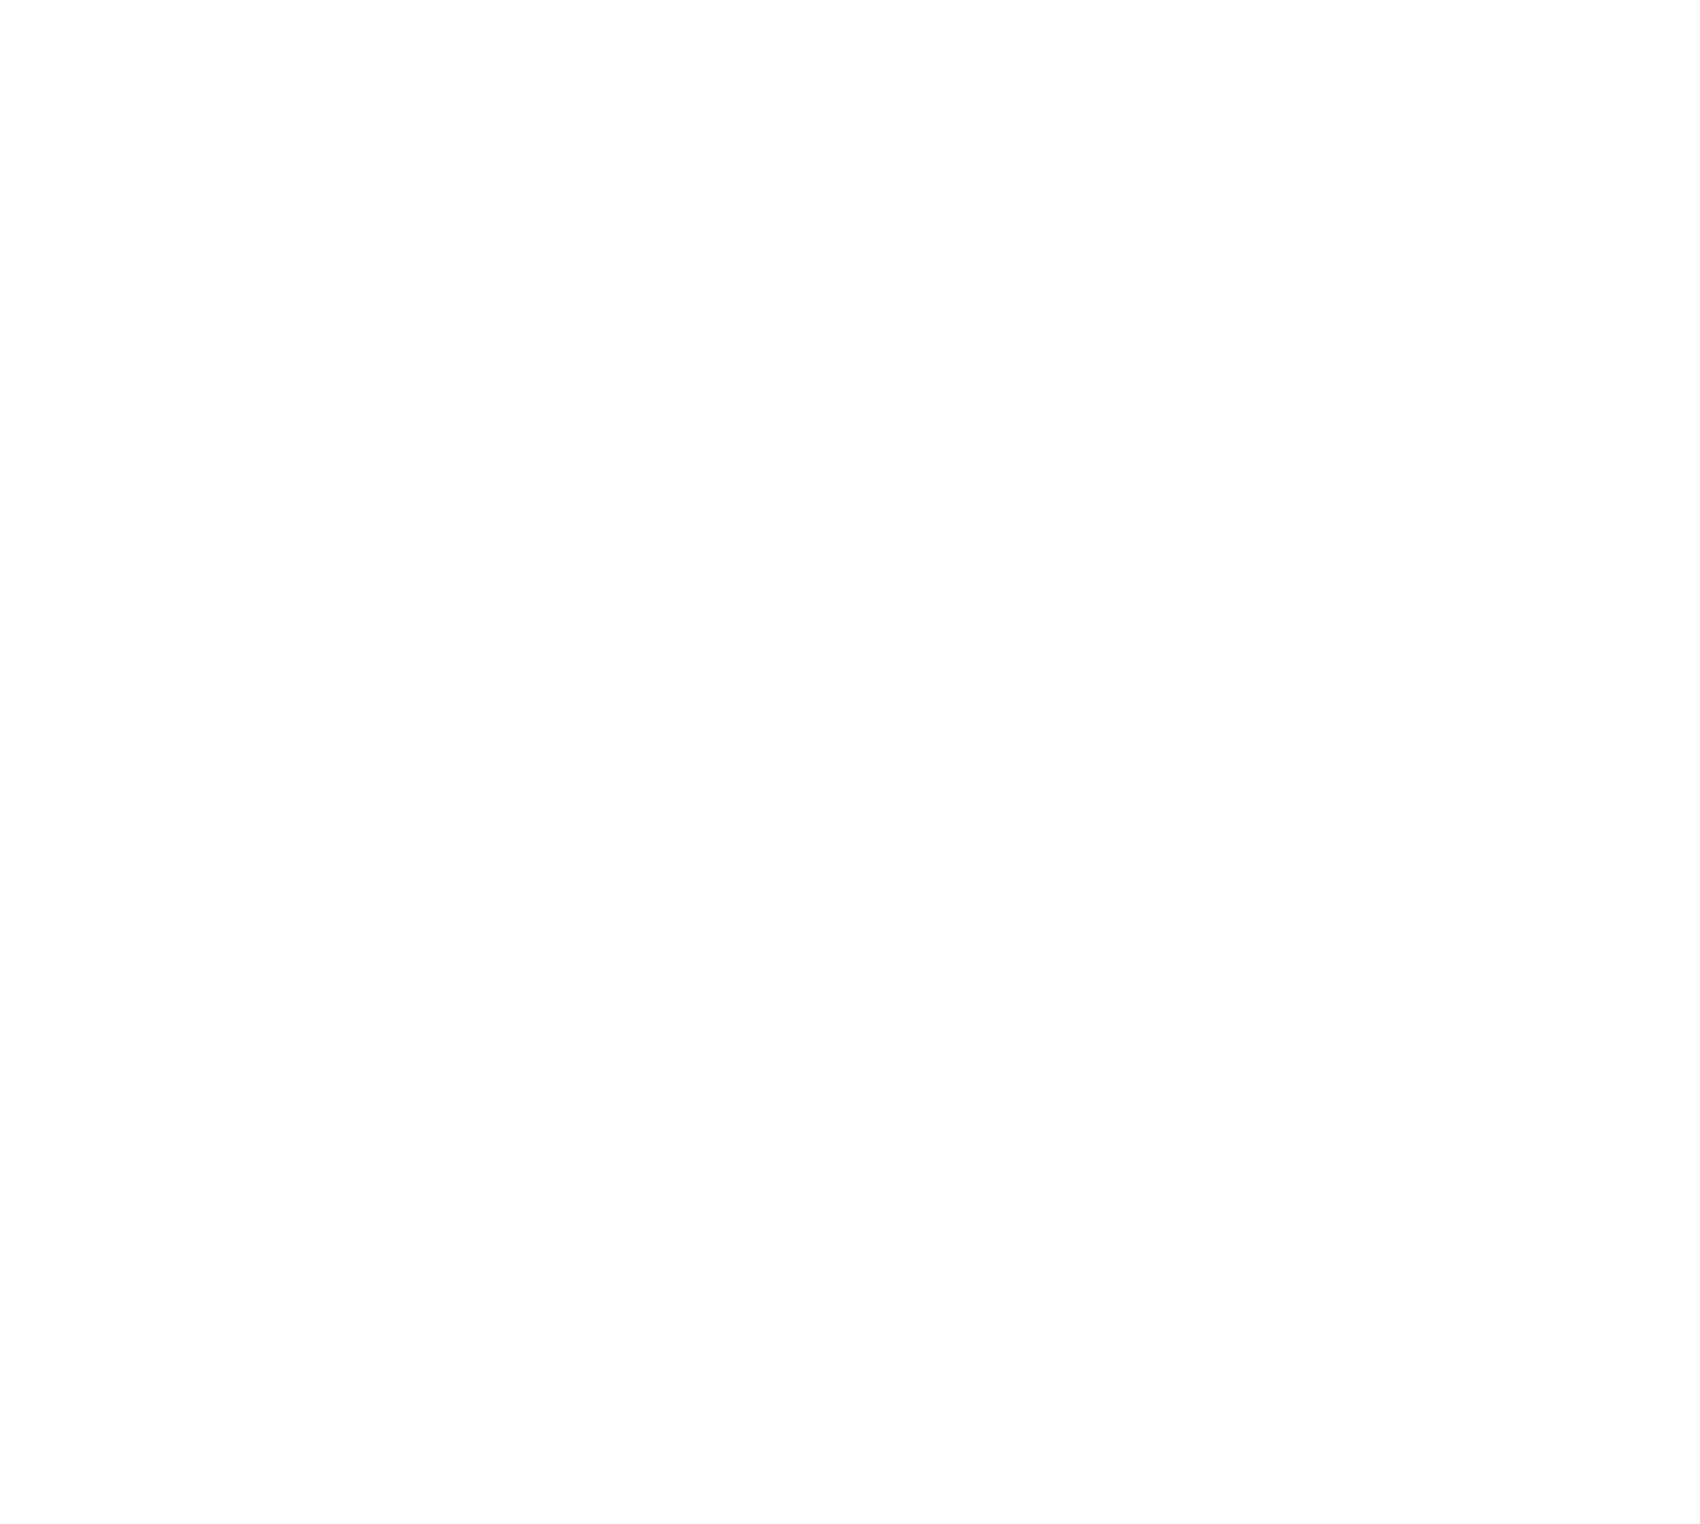 soydrinks.png